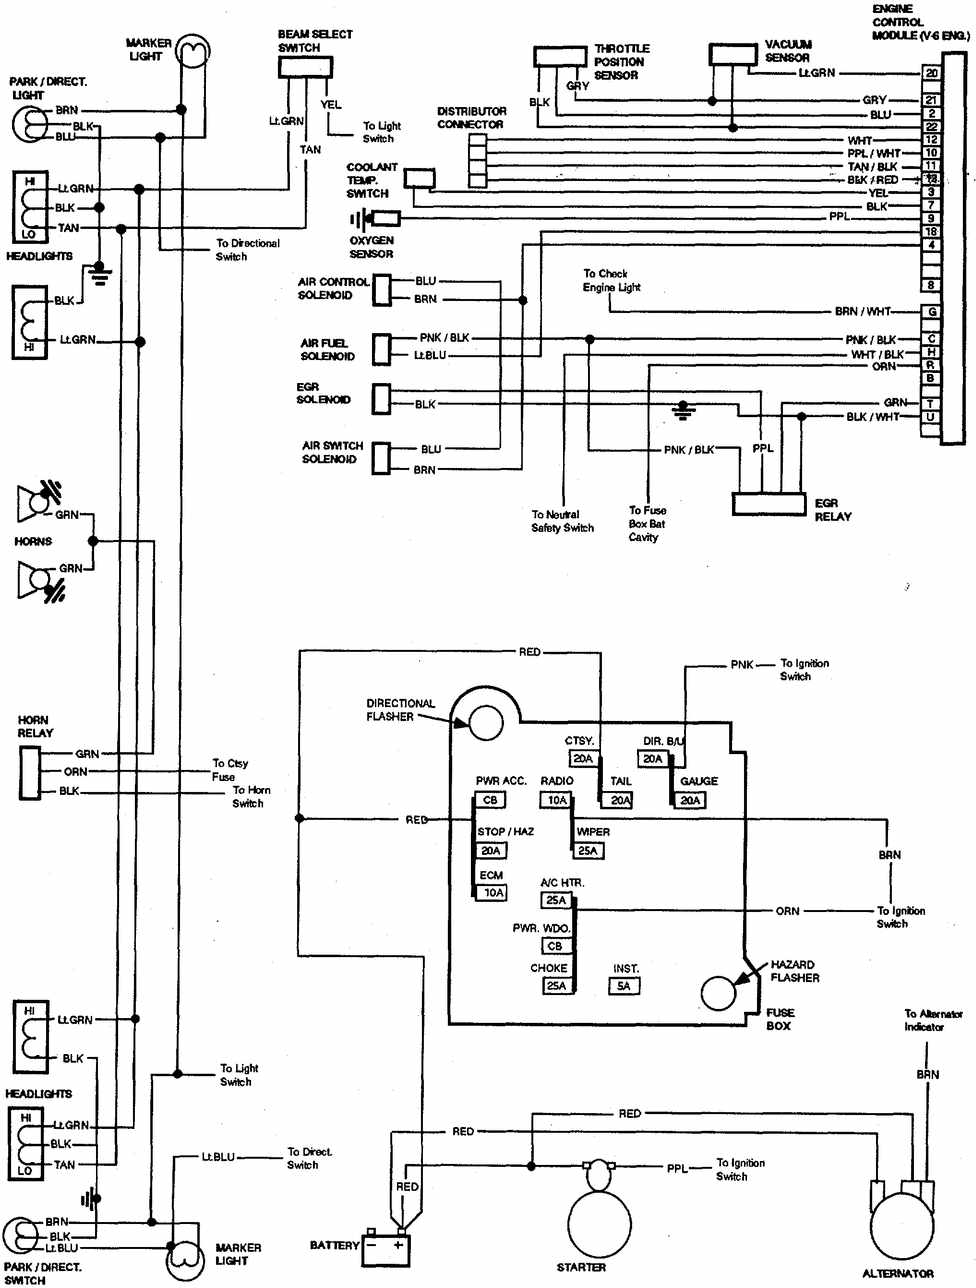 1990 Chevy Caprice Wiring Diagram | Wiring Diagram